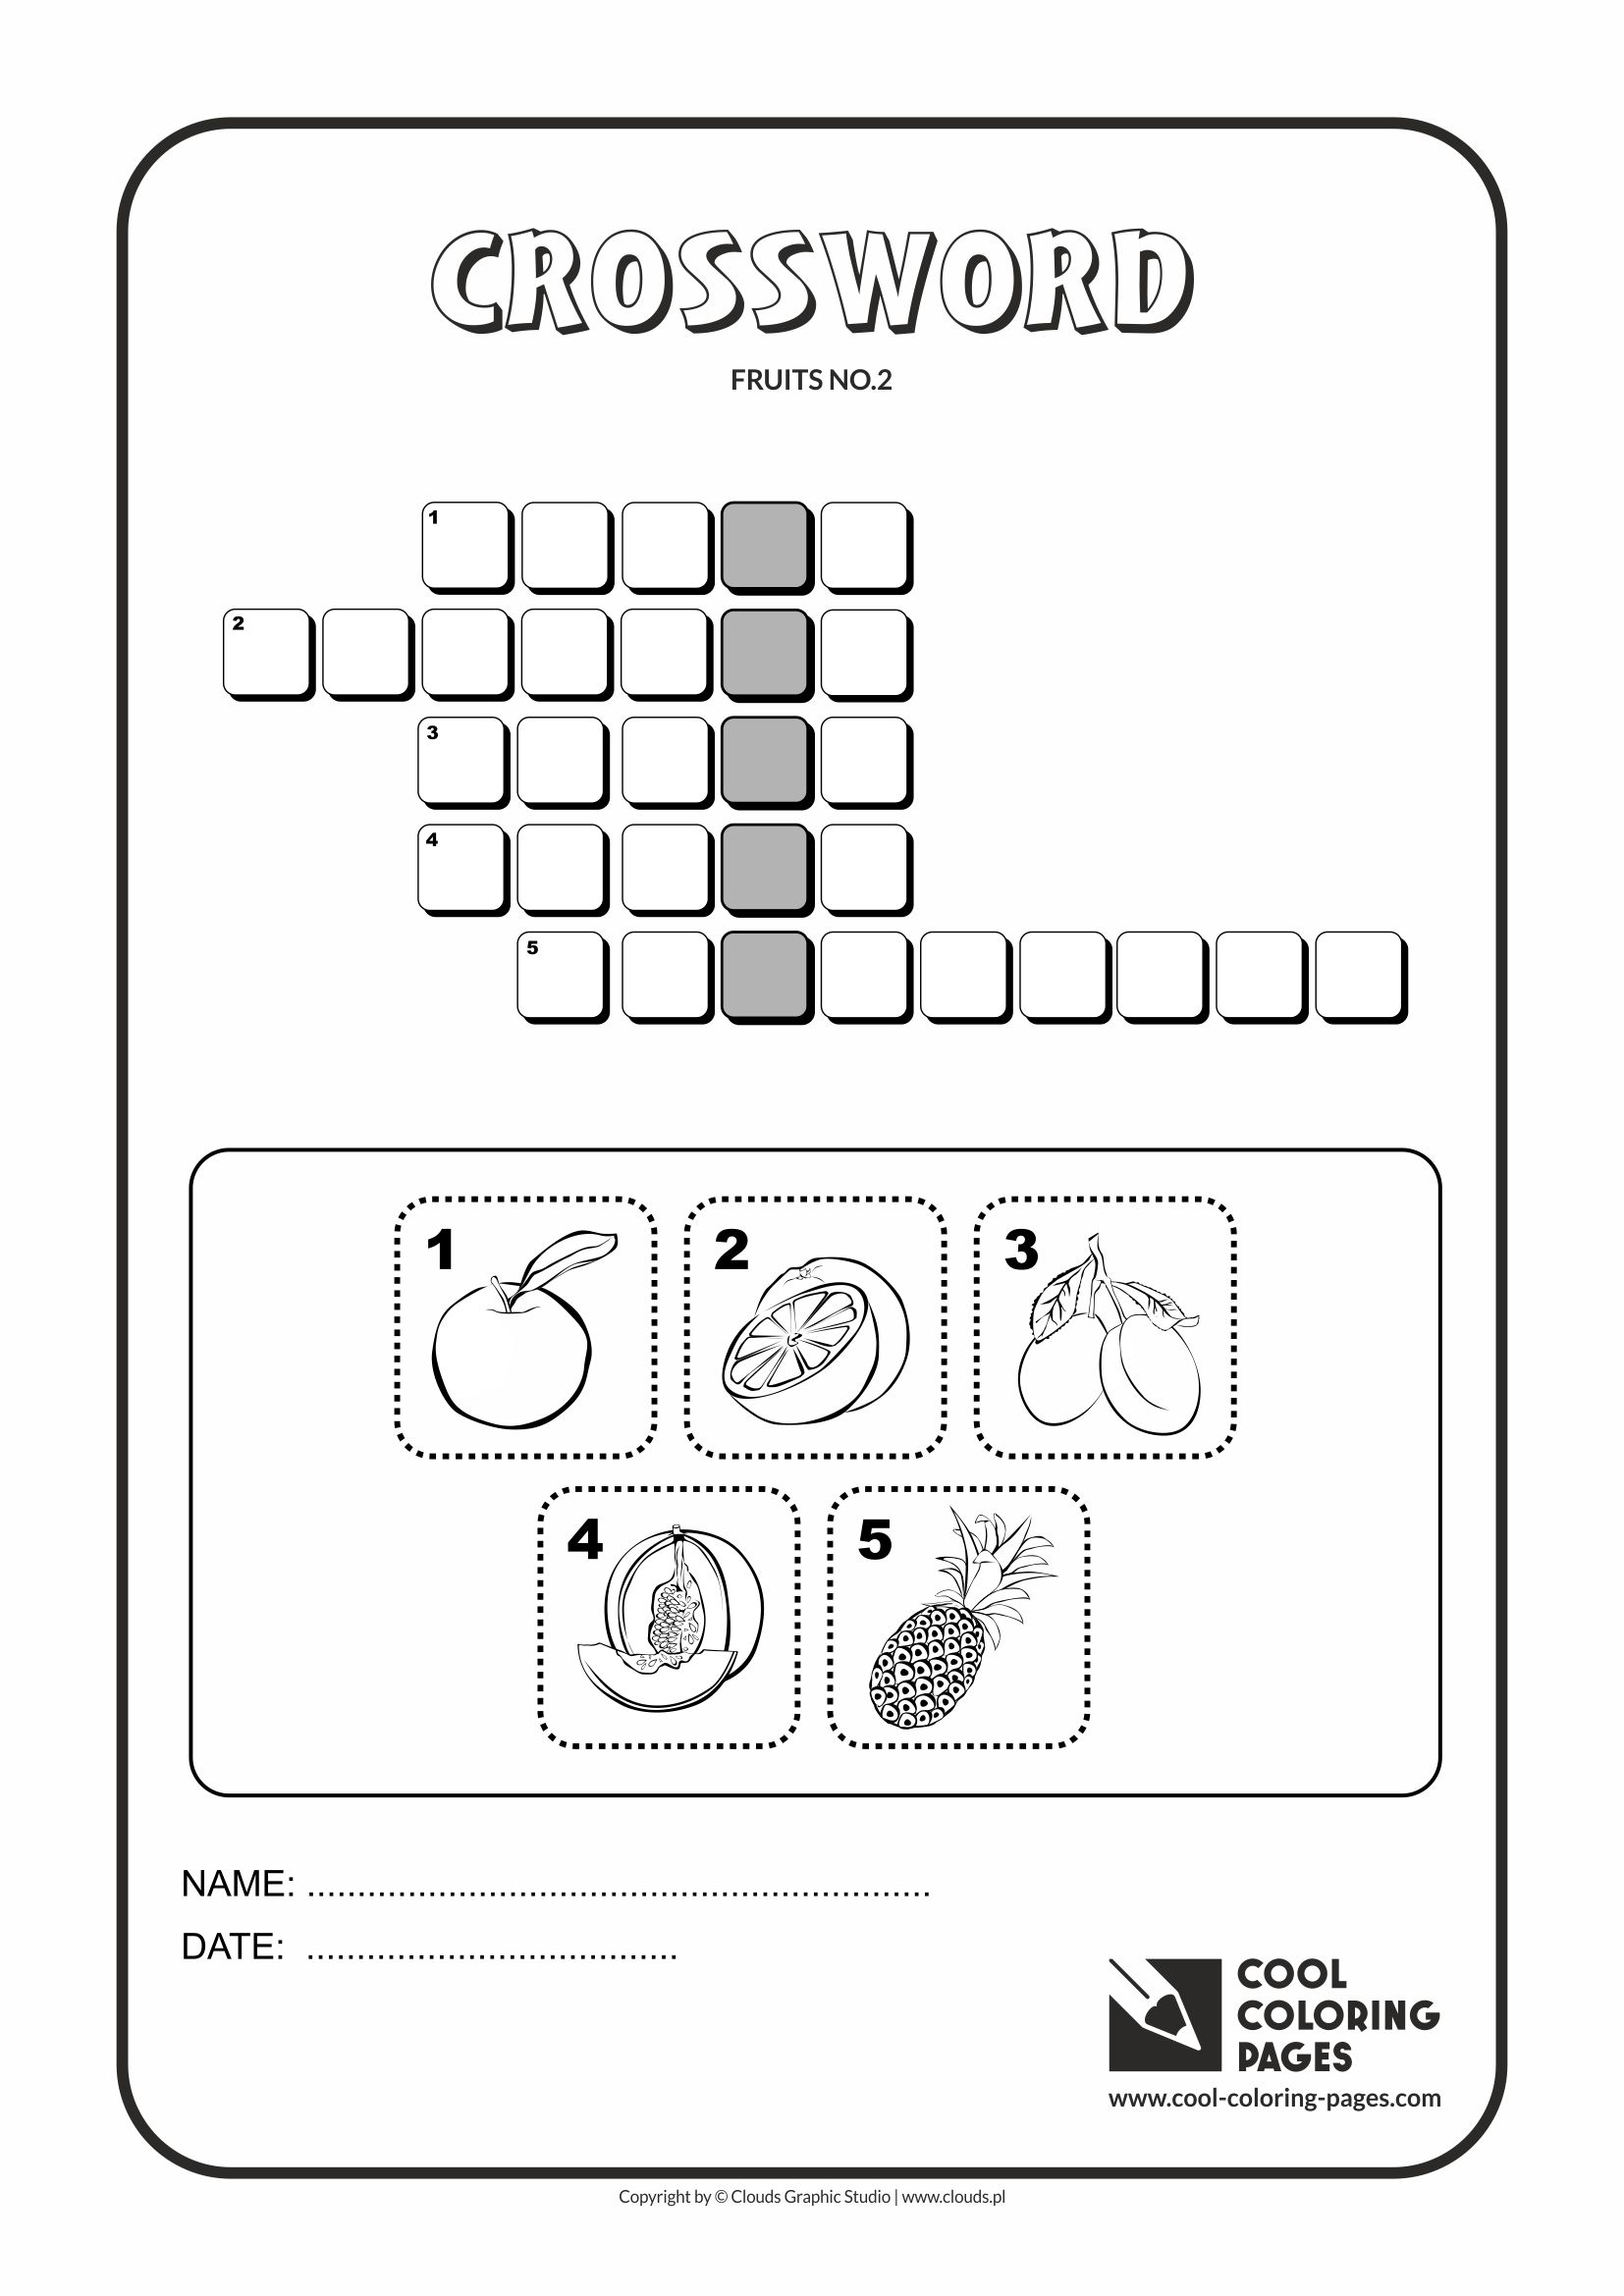 Cool Coloring Pages -Crosswords / Crossword fruits no 2